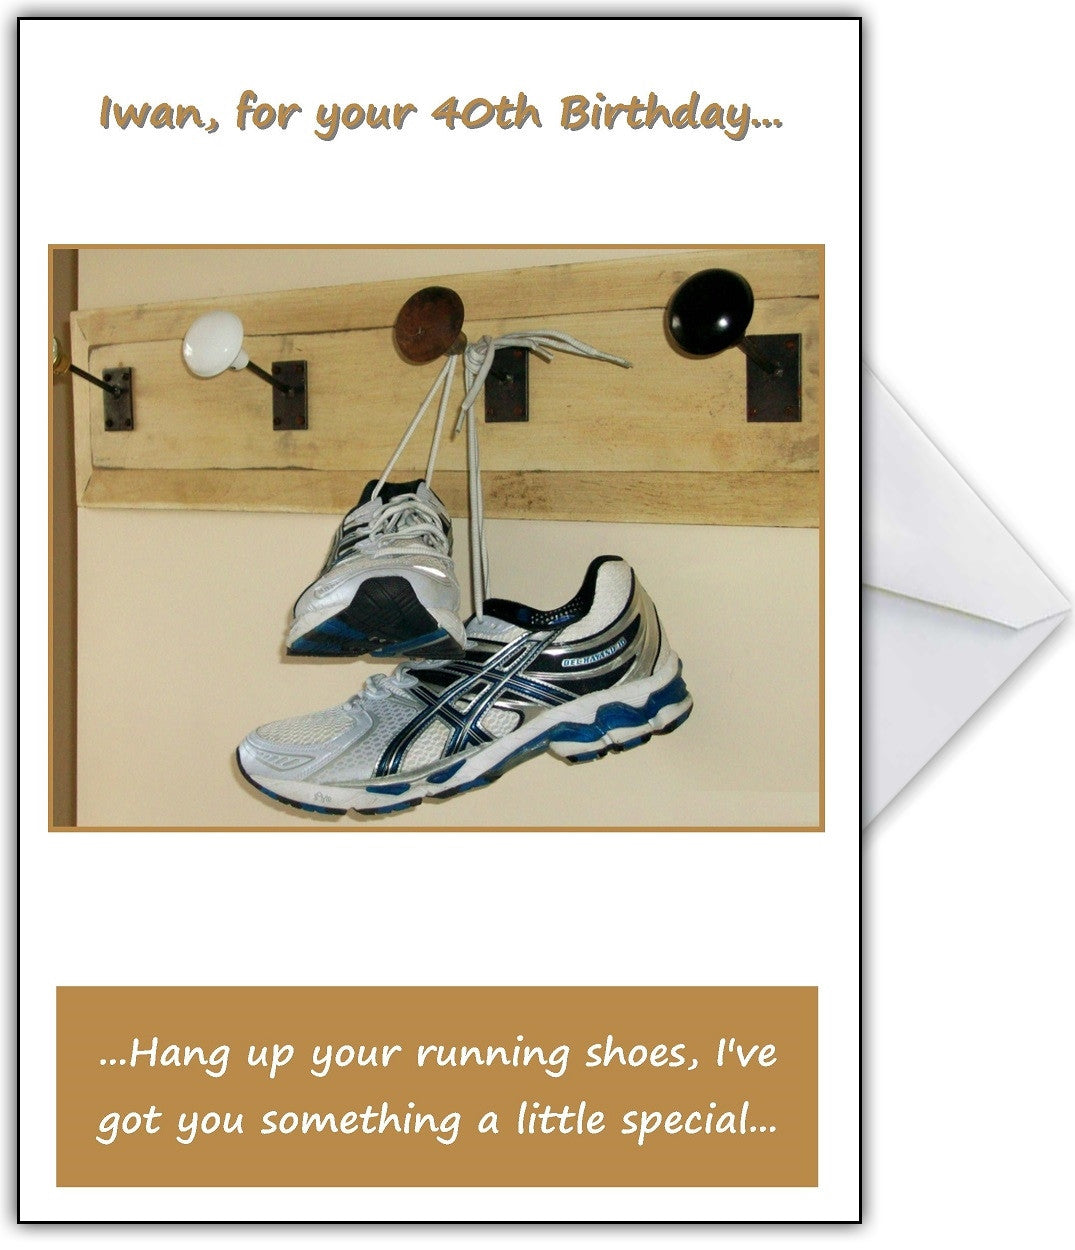 Time To Hang Up Your Running Shoes Funny Birthday Card